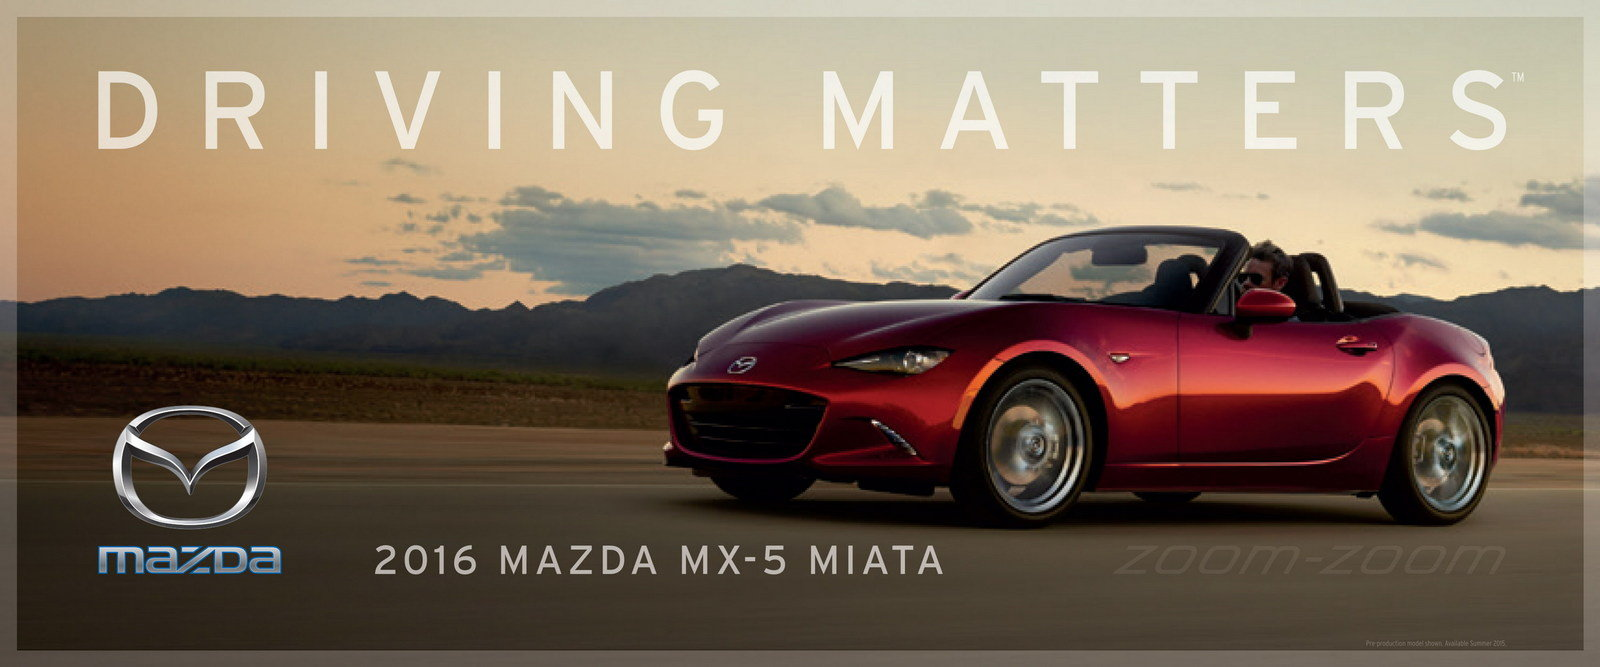 """Mazda Launches """"Driving Matters"""" Slogan - Picture 631160 ..."""